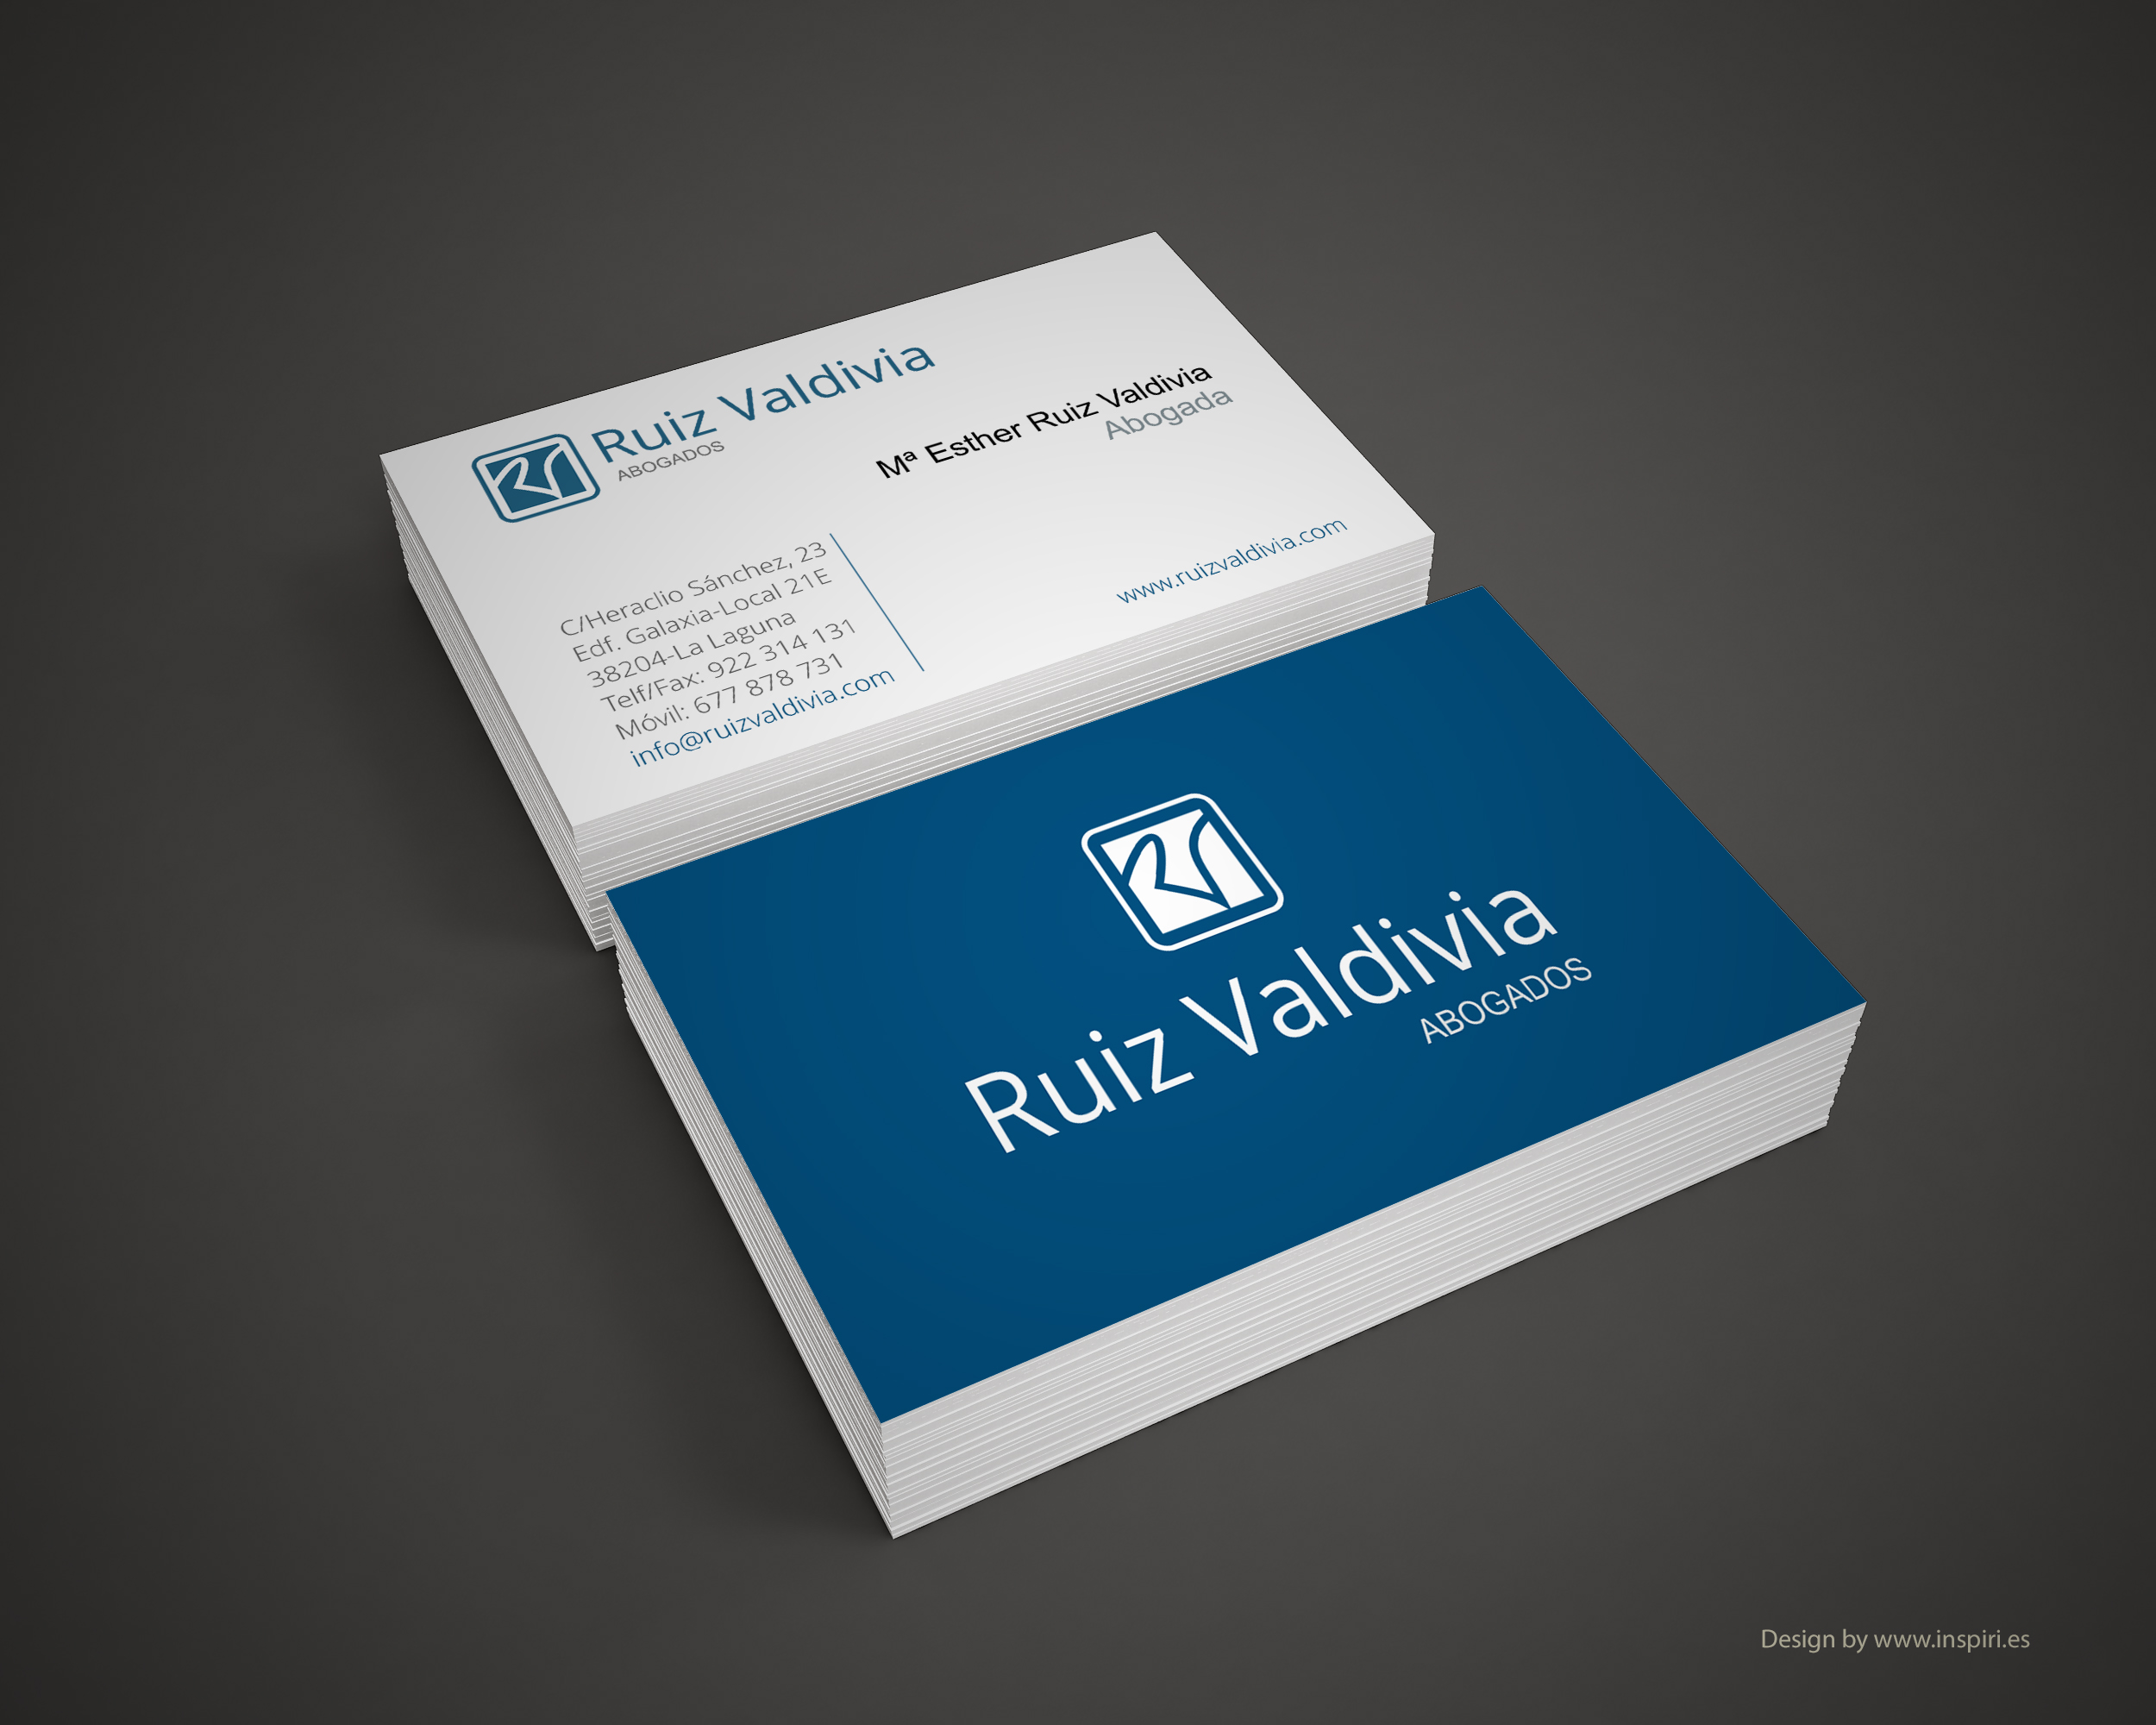 Ruiz Valdivia Business card